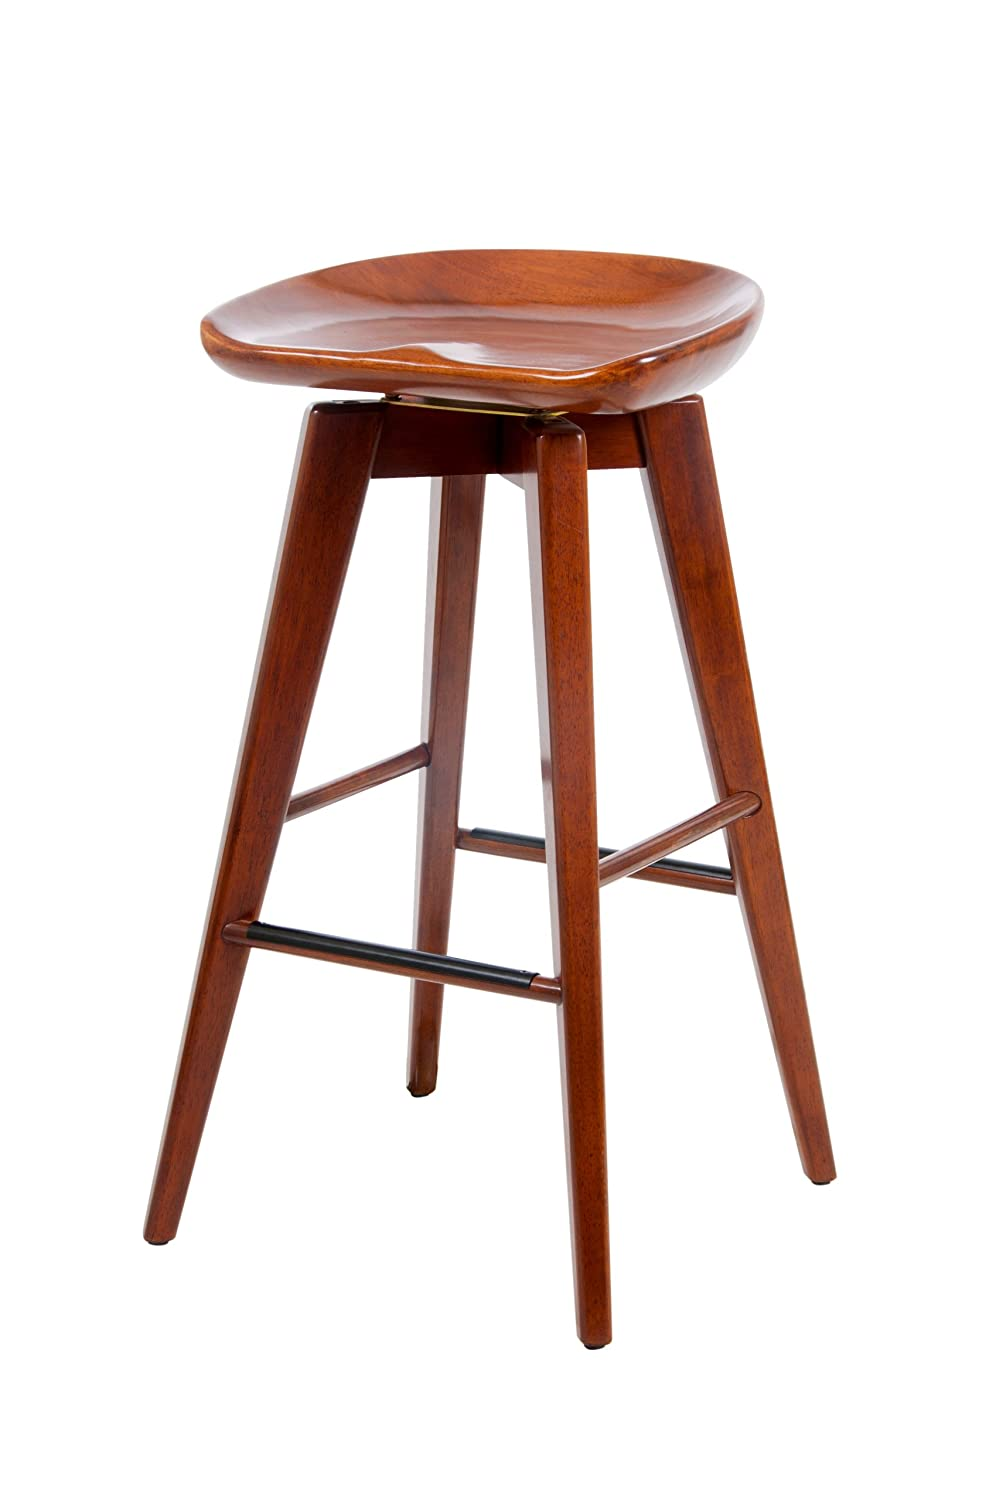 definition arms to height wooden amusing black beautiful wood perfect home outdoorperfect stool stylish improvement counter apply your high top combine with stools swivel decor bar